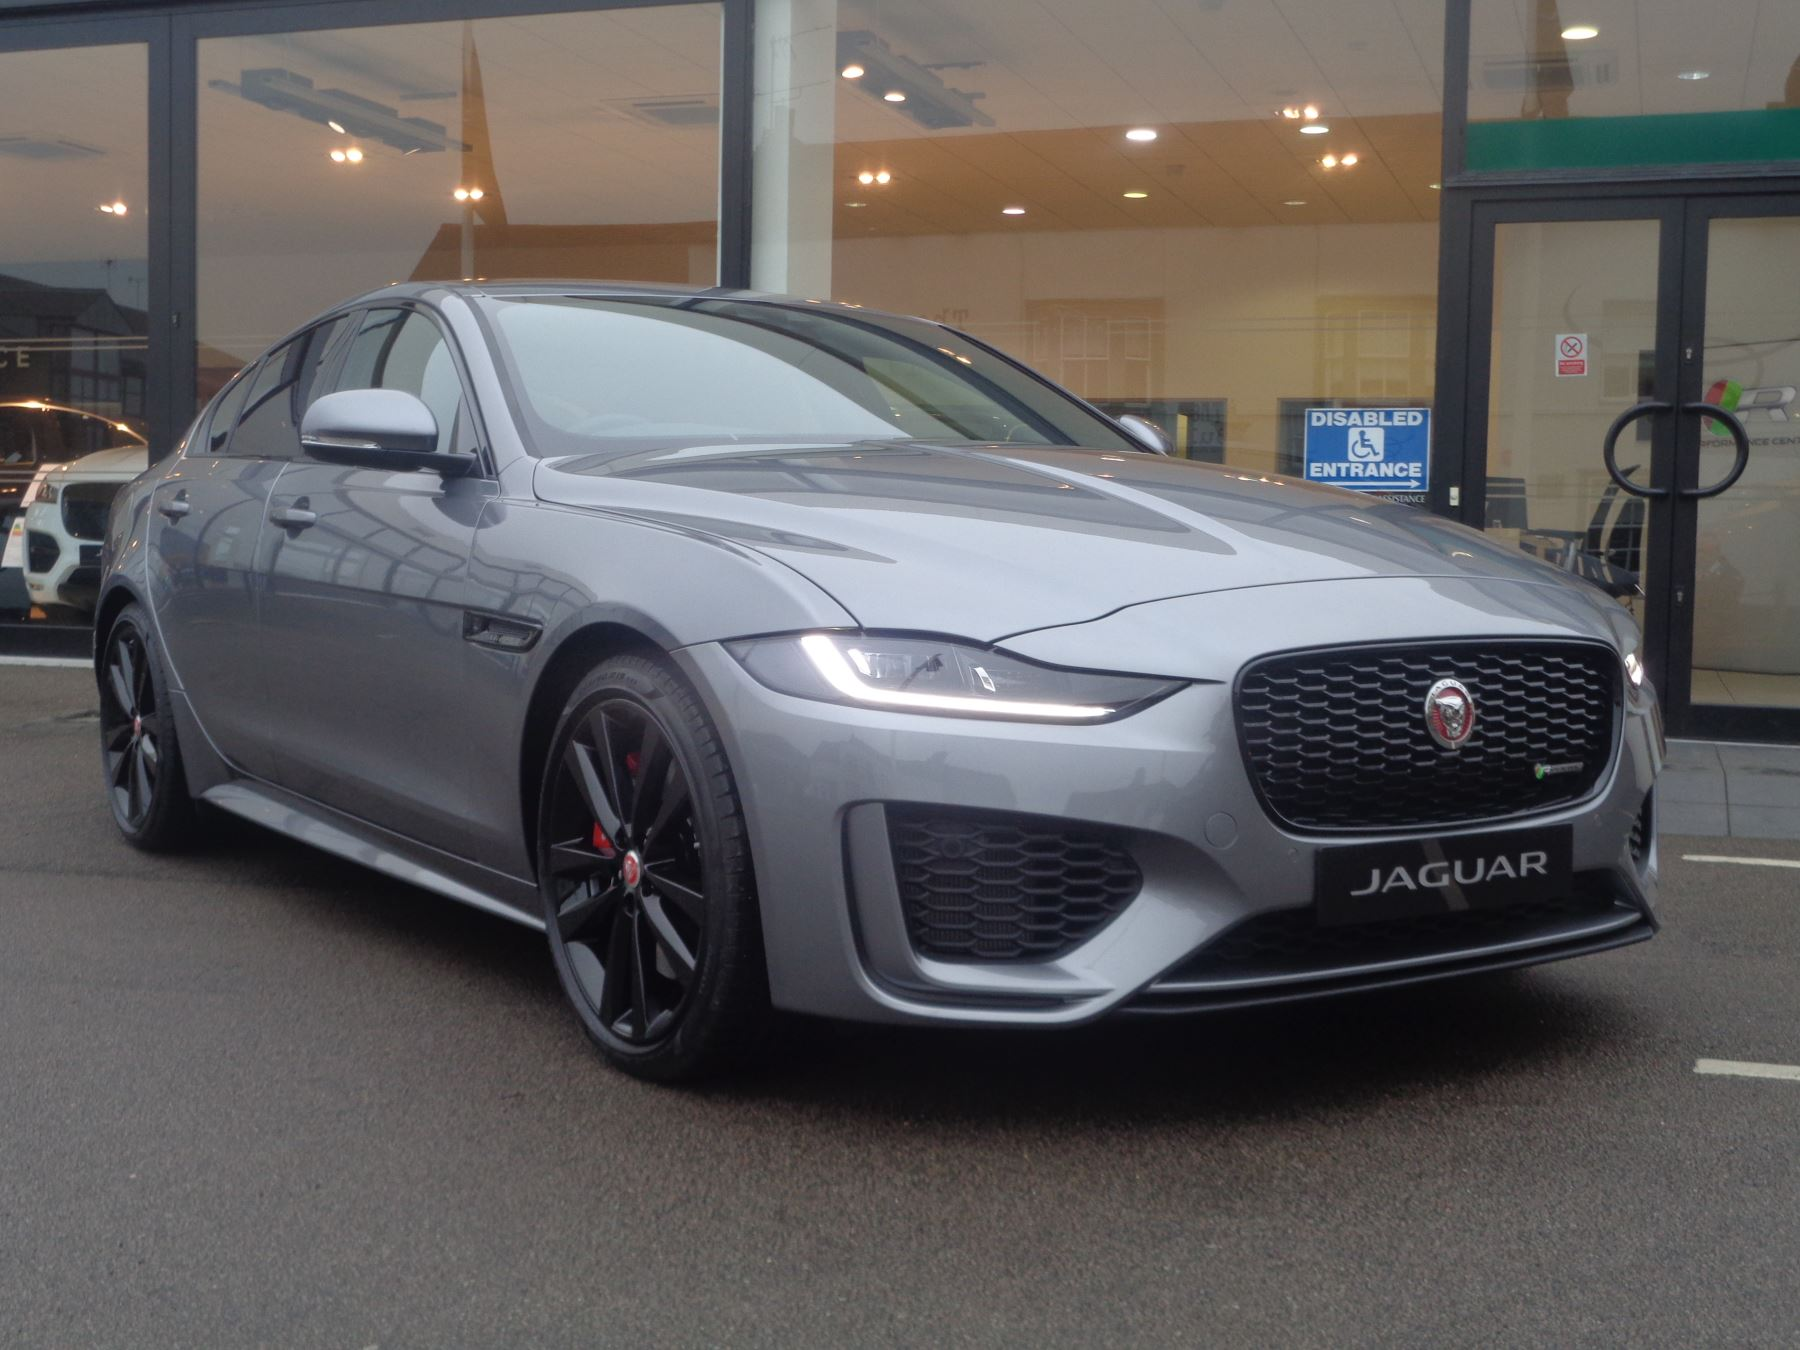 Jaguar  First Choice for Servicing in Essex